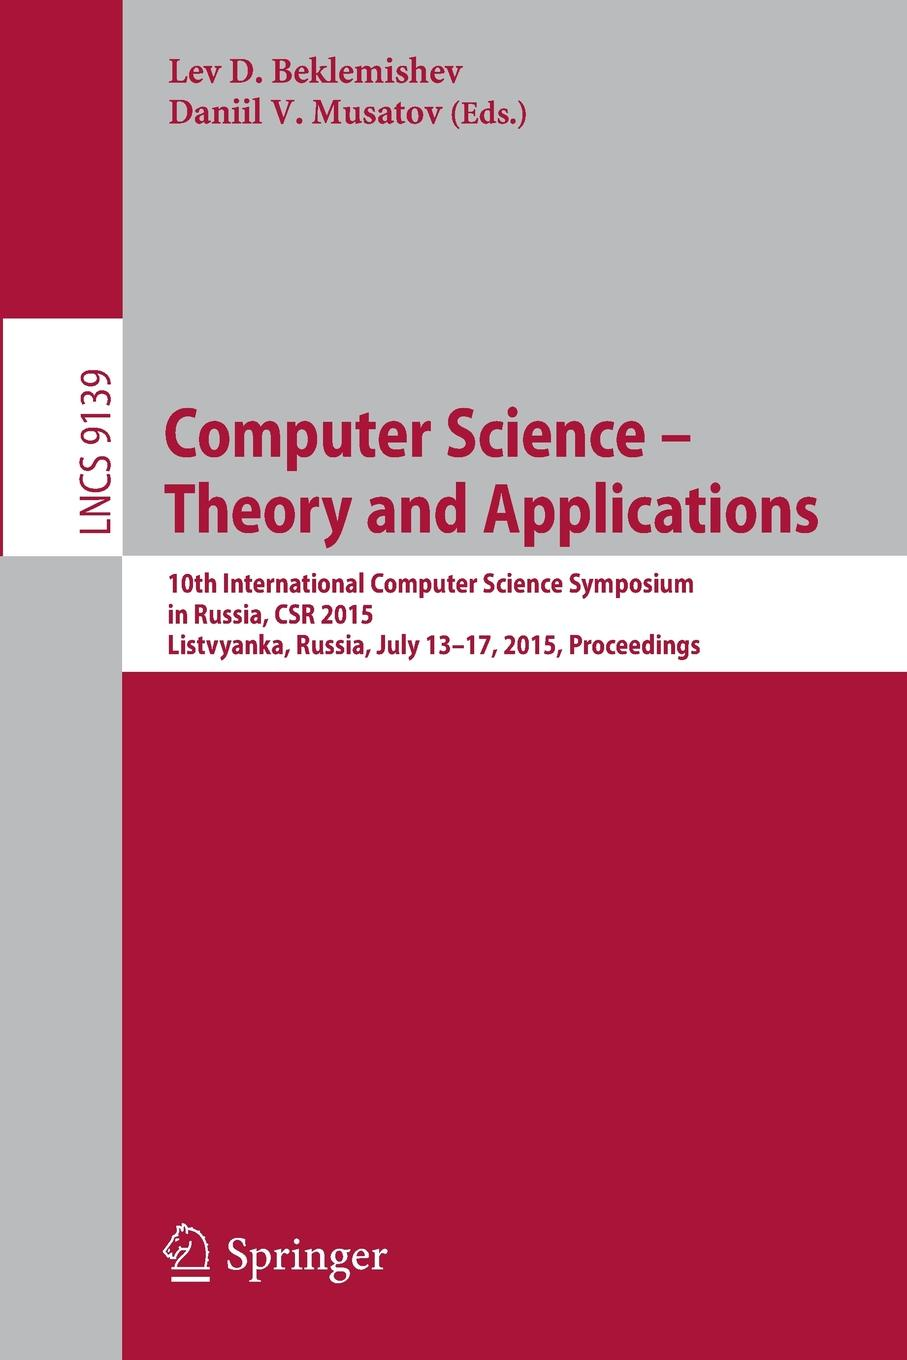 Computer Science -- Theory and Applications. 10th International Computer Science Symposium in Russia, CSR 2015, Listvyanka, Russia, July 13-17, 2015, Proceedings computer